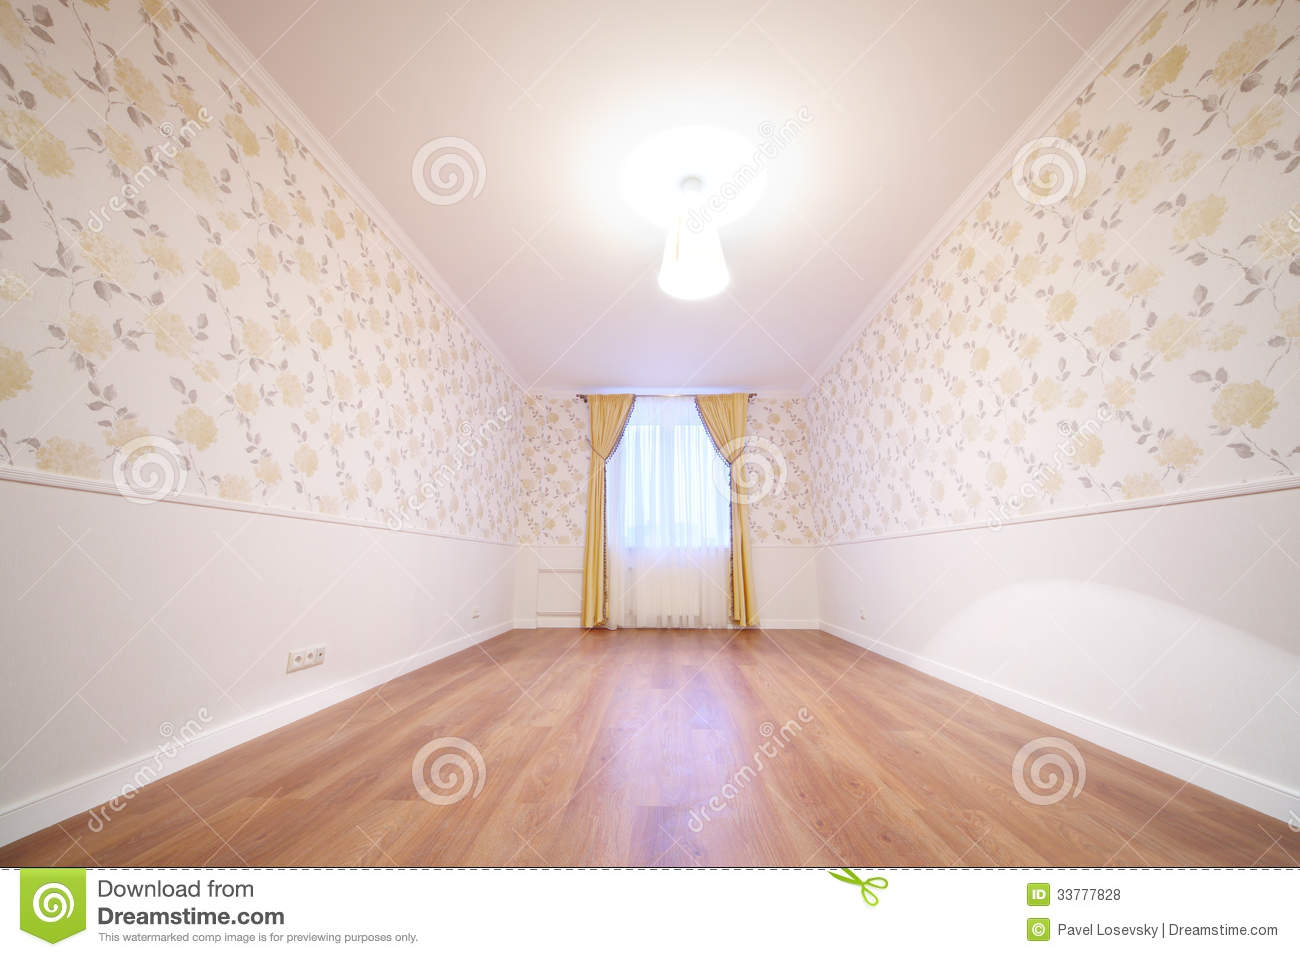 Cozy And Simple Room With Window With Curtains Royalty Free Stock